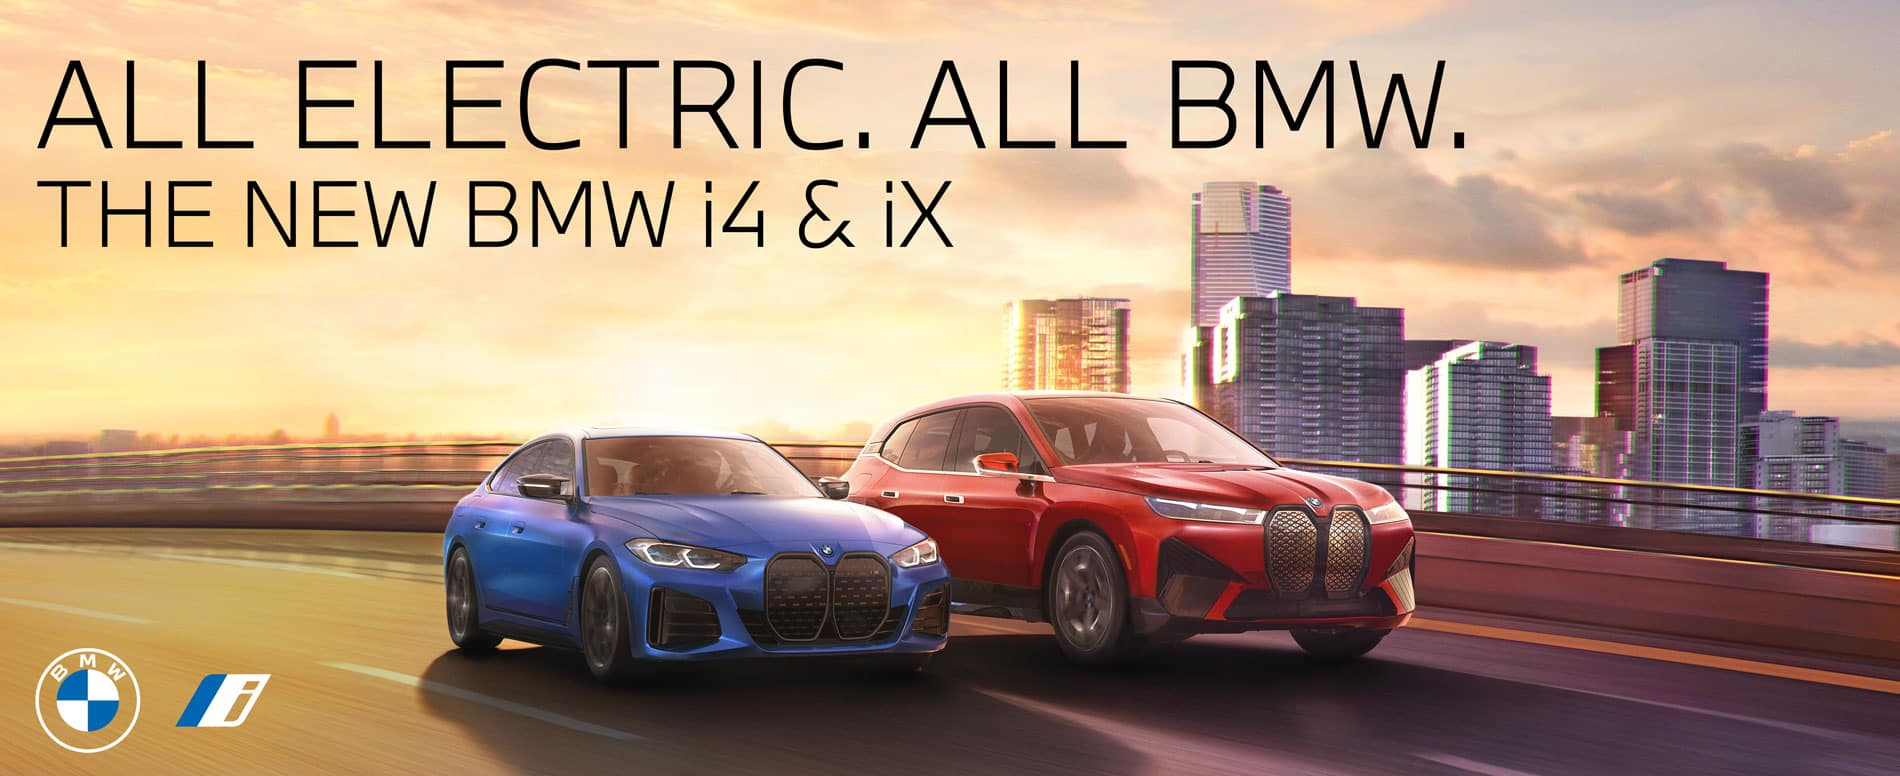 i4 and iX preorder